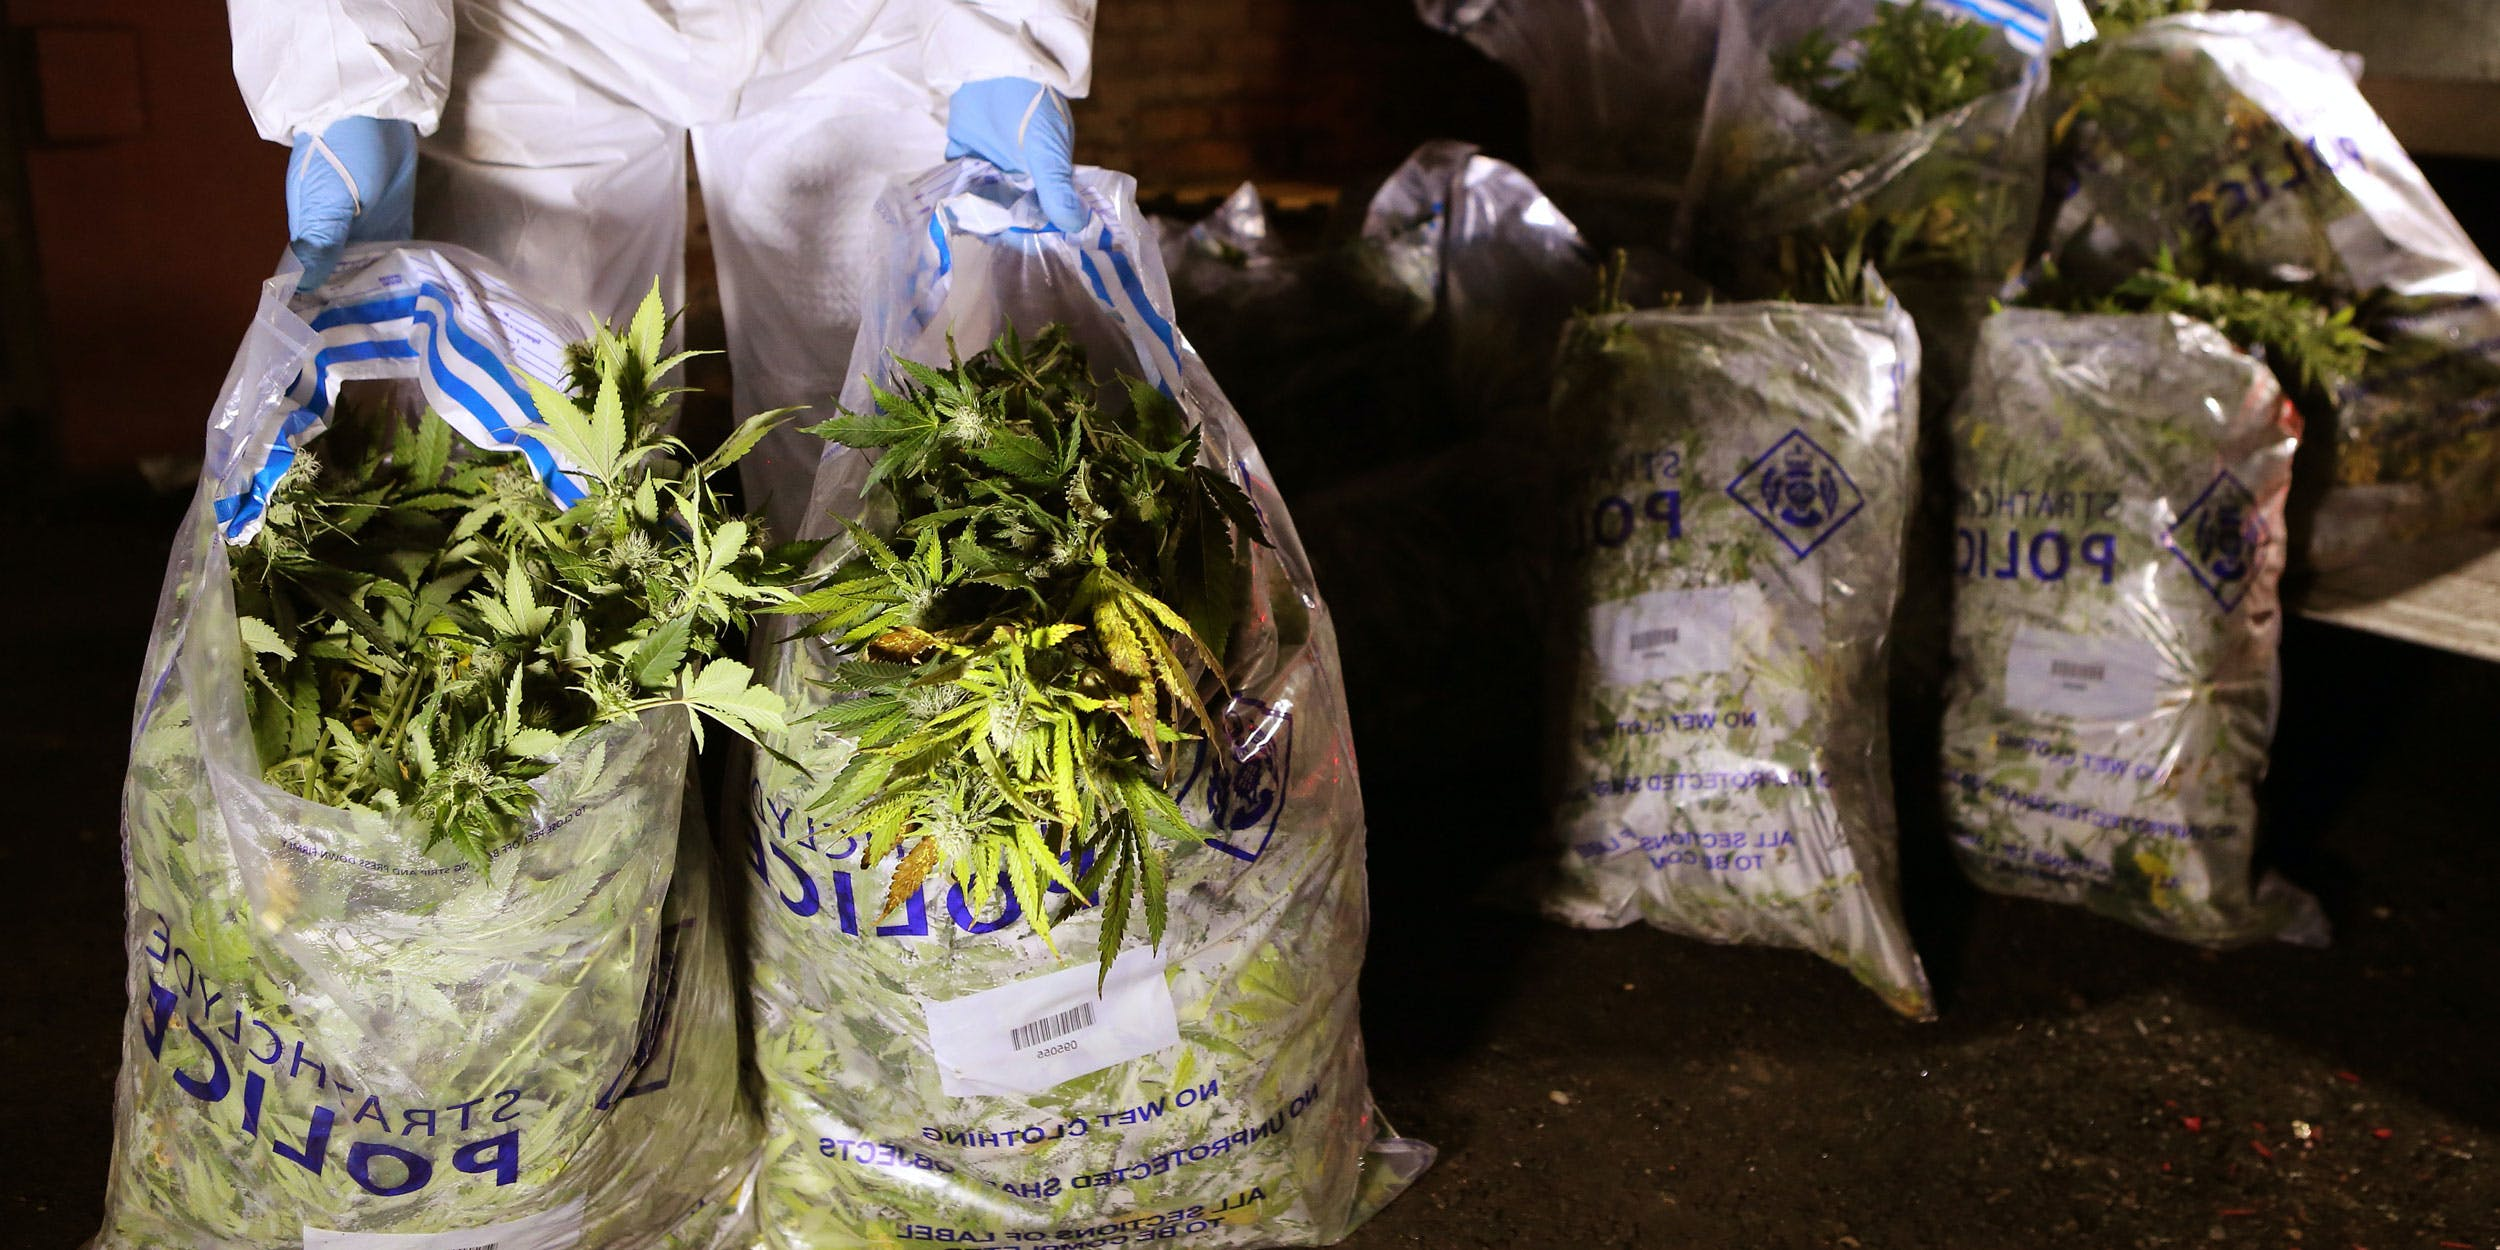 Strathclyde Police officers in Scotland load drugs in bags believed to be cannabis after it was found at a commercial premise in Rutherglen after a drugs raid. The police in London recently announced that they discover illegal cannabis grows in the UK's capital every two days.